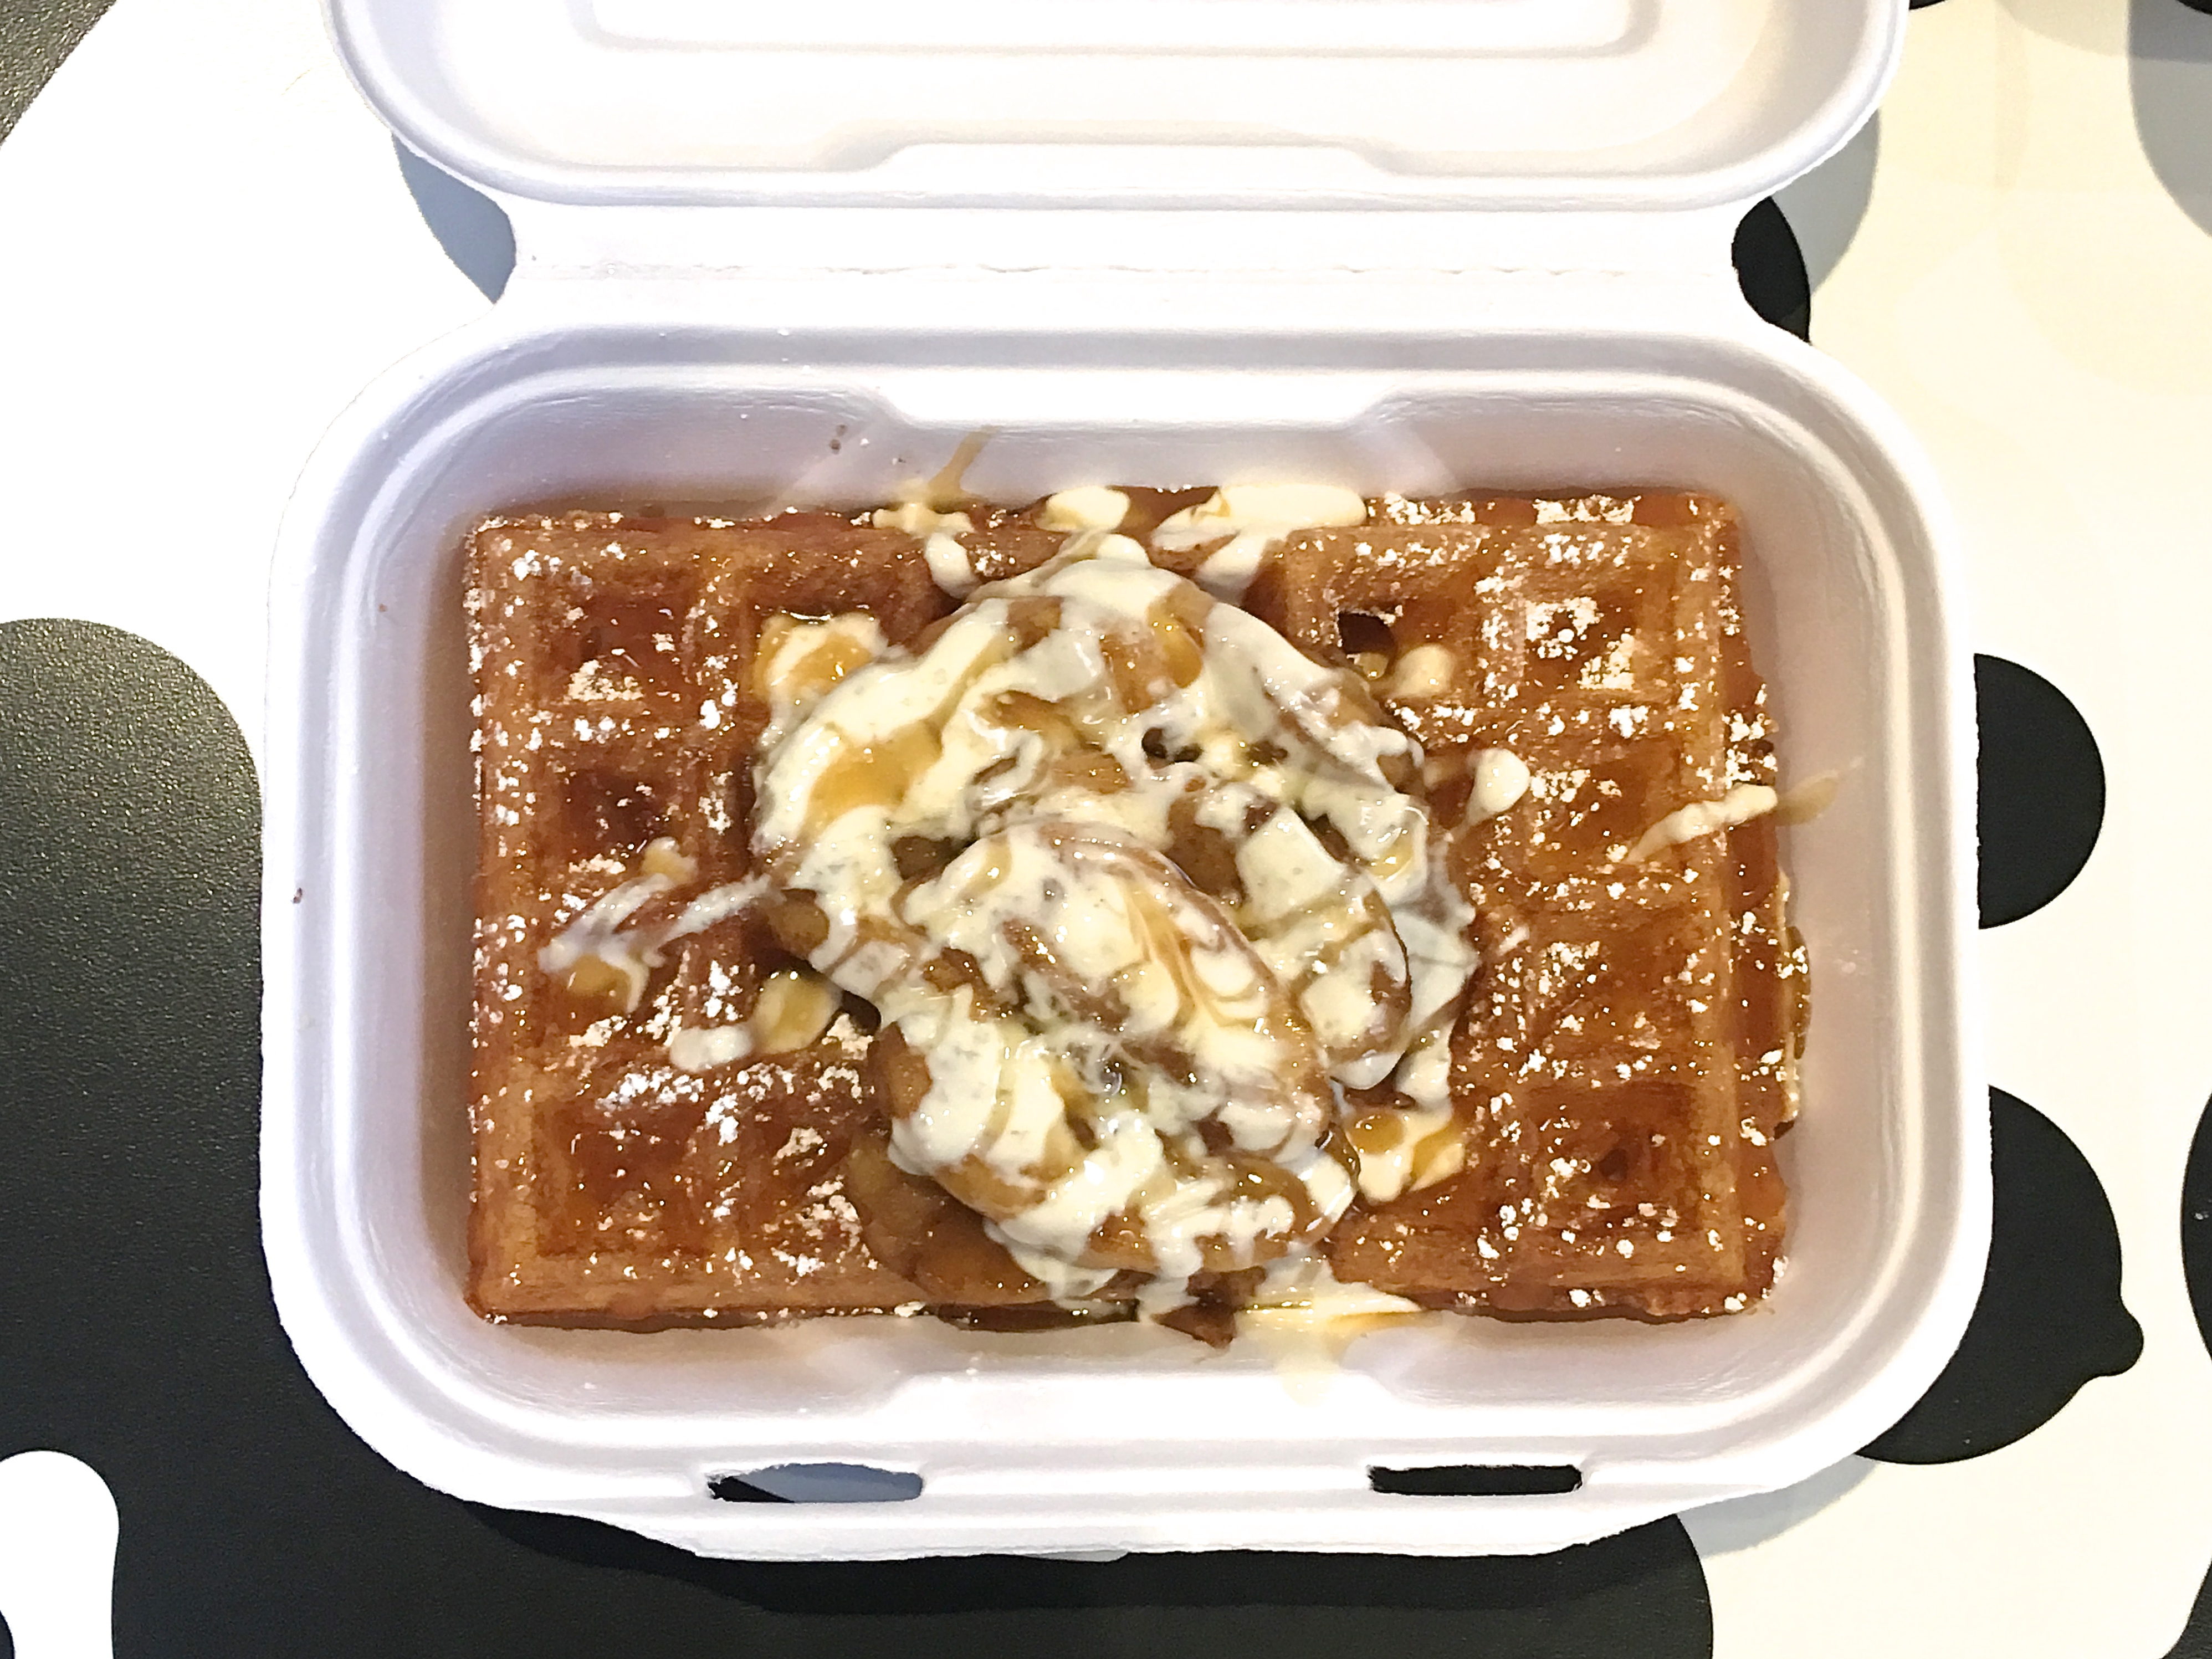 A waffle with cinnamon apples, whipped cream, and caramel drizzle on top